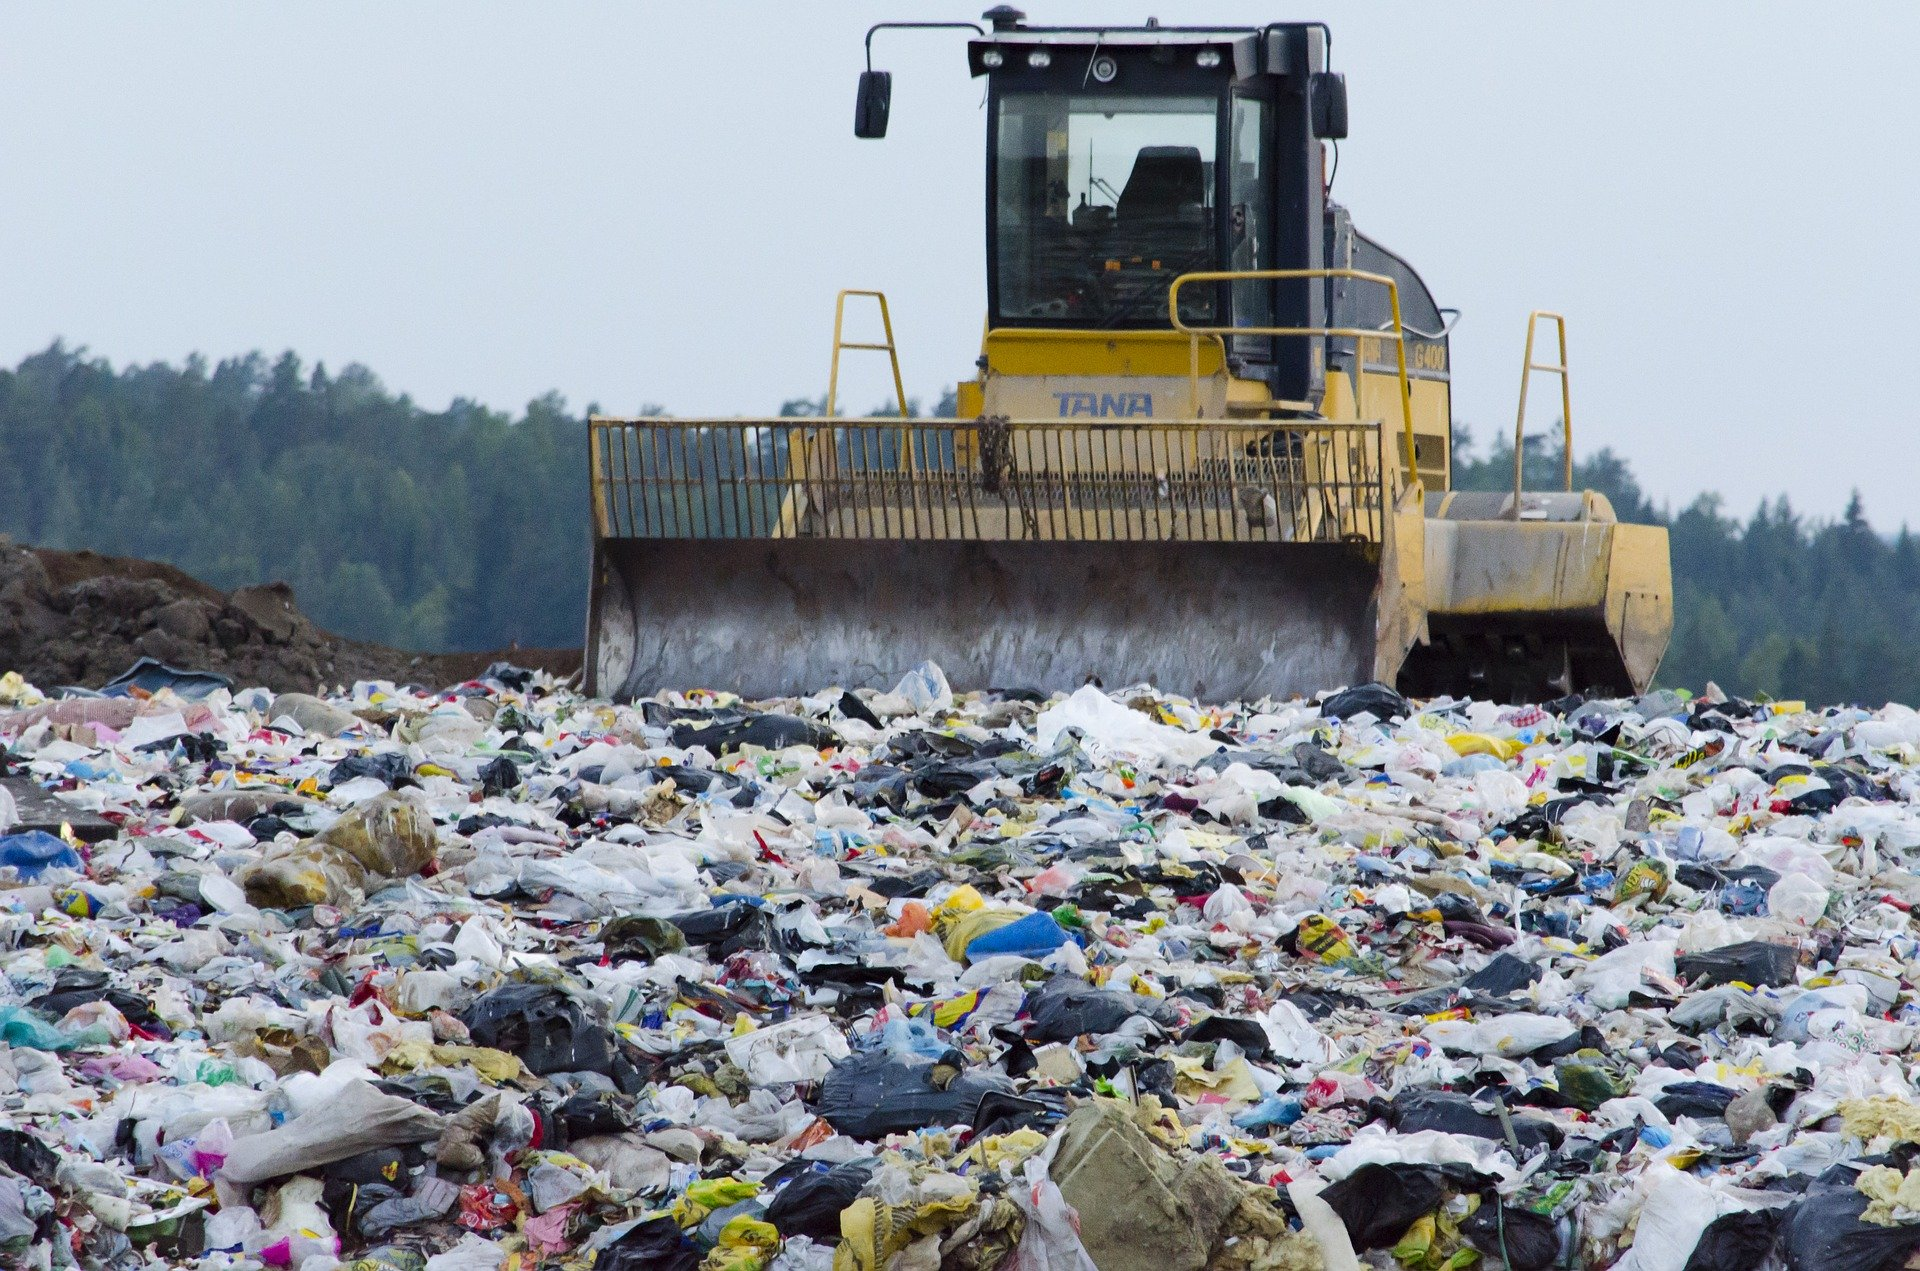 landfills are a cause of pollution